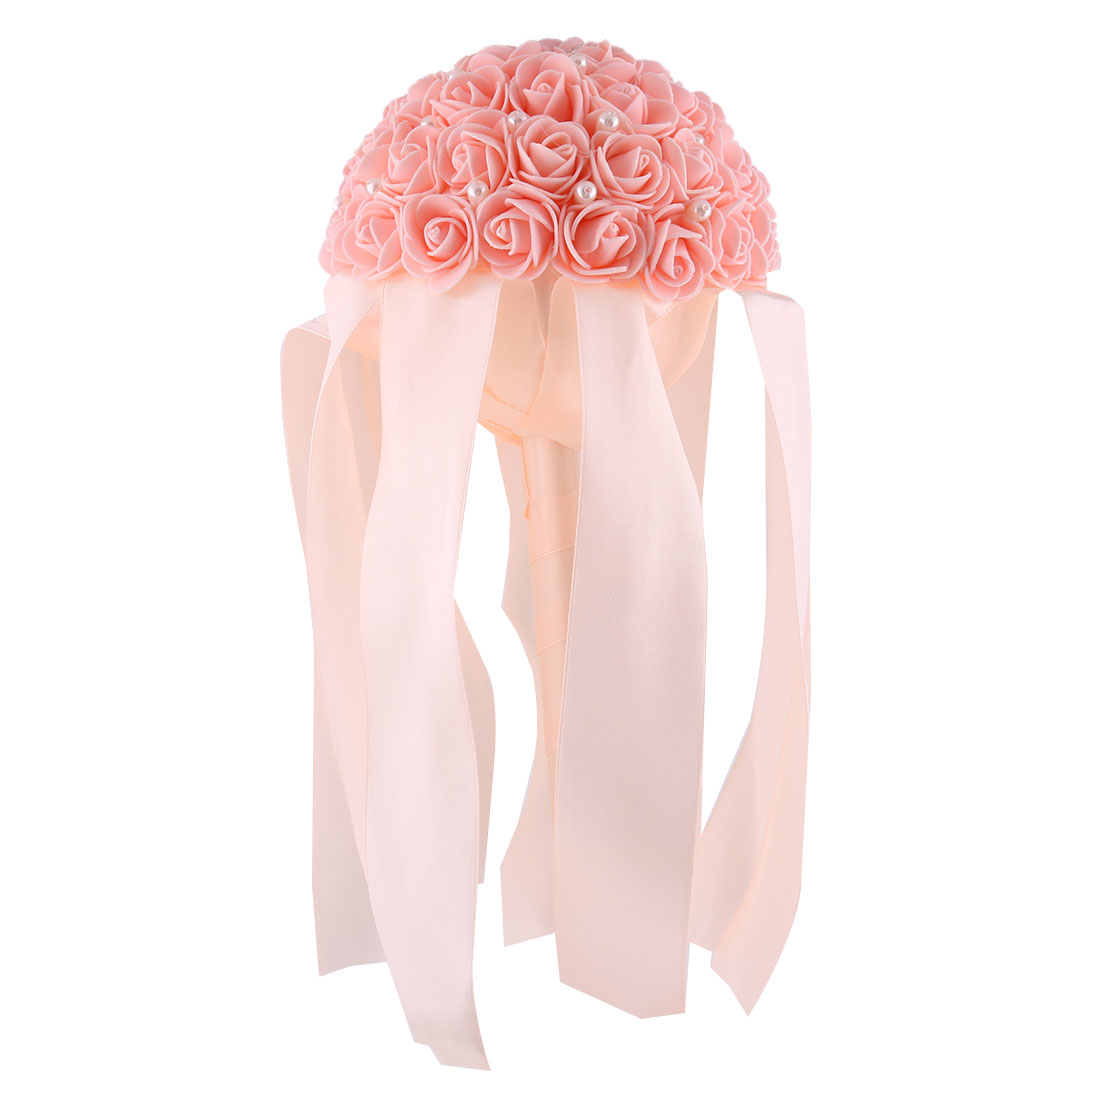 Bridal Wedding Party Foam Rose Flower Ribbon Beads Decor Handhold Bouquet Coral Pink